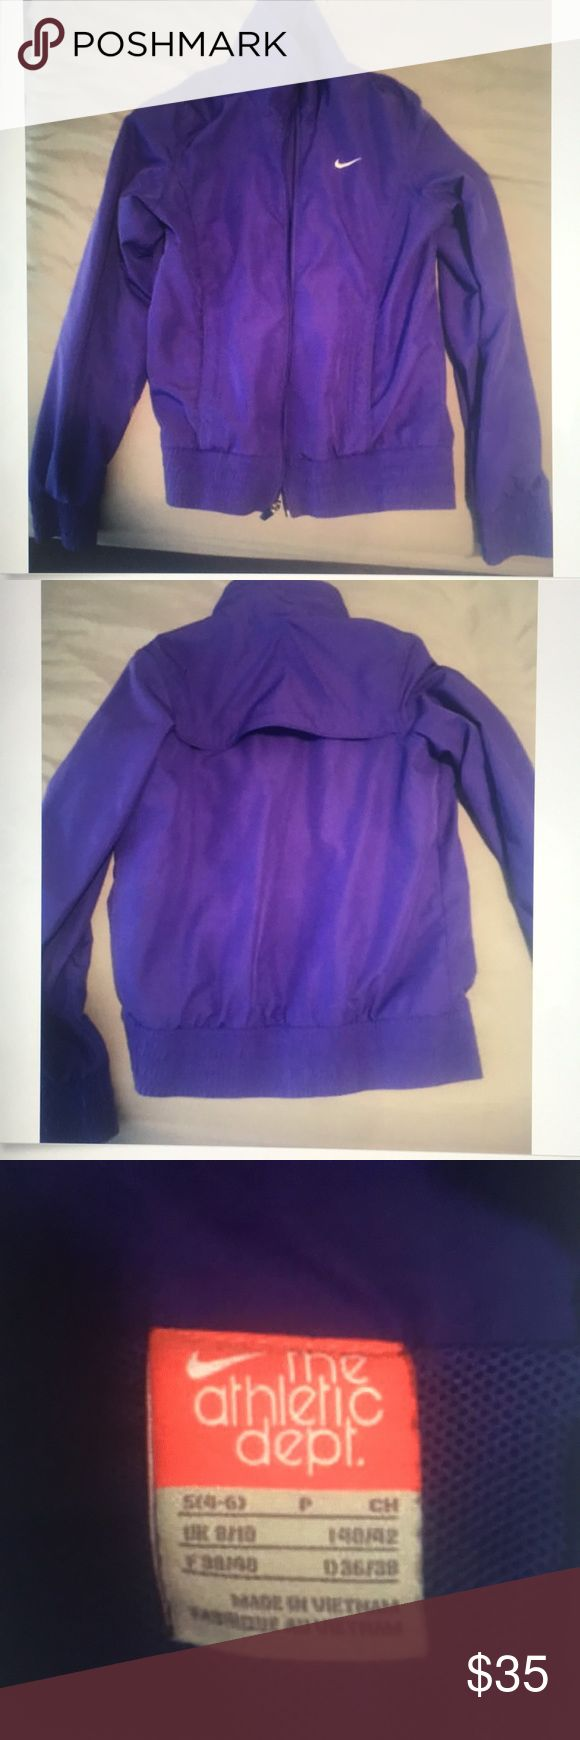 Women's Purple Nike Zip Up Size Small In great condition! Nike Jackets & Coats